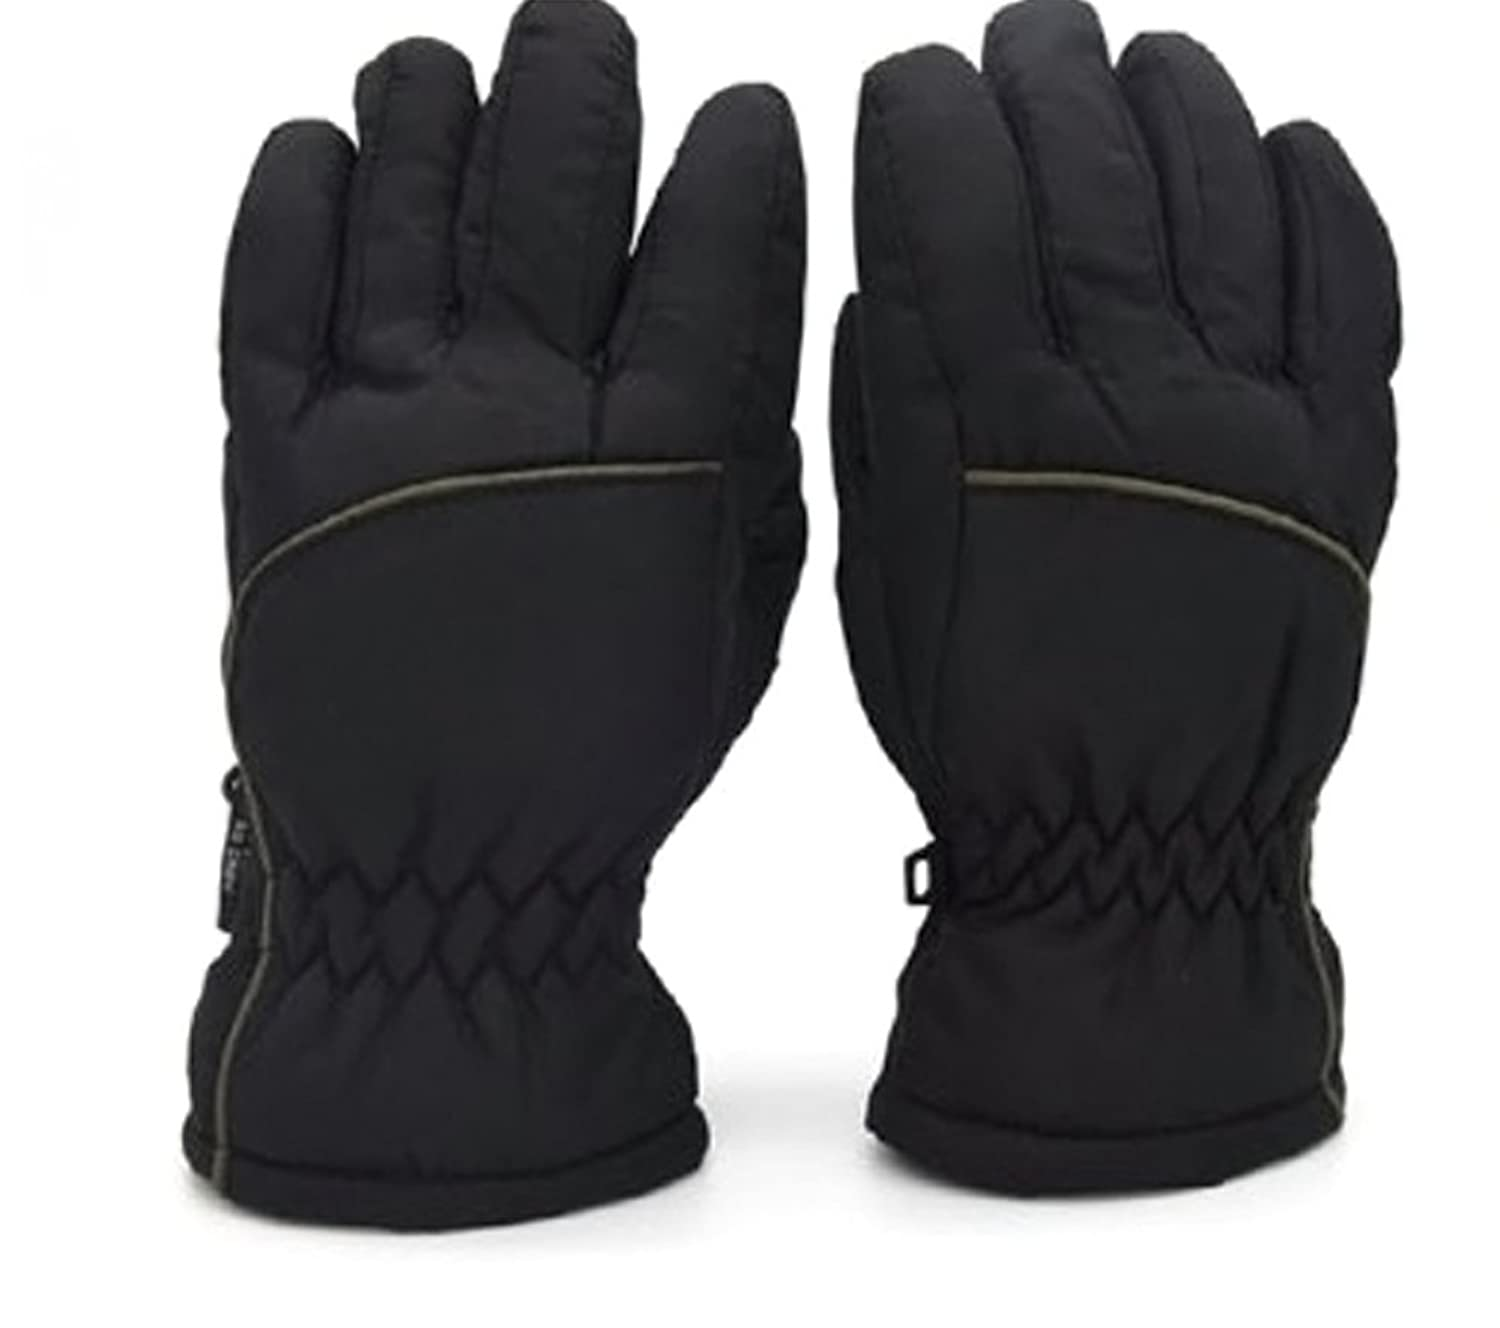 discount Kids Waterproof 3M Thinsulate Ski Gloves with Anti-slip Palm Age 4 - 12+ on sale